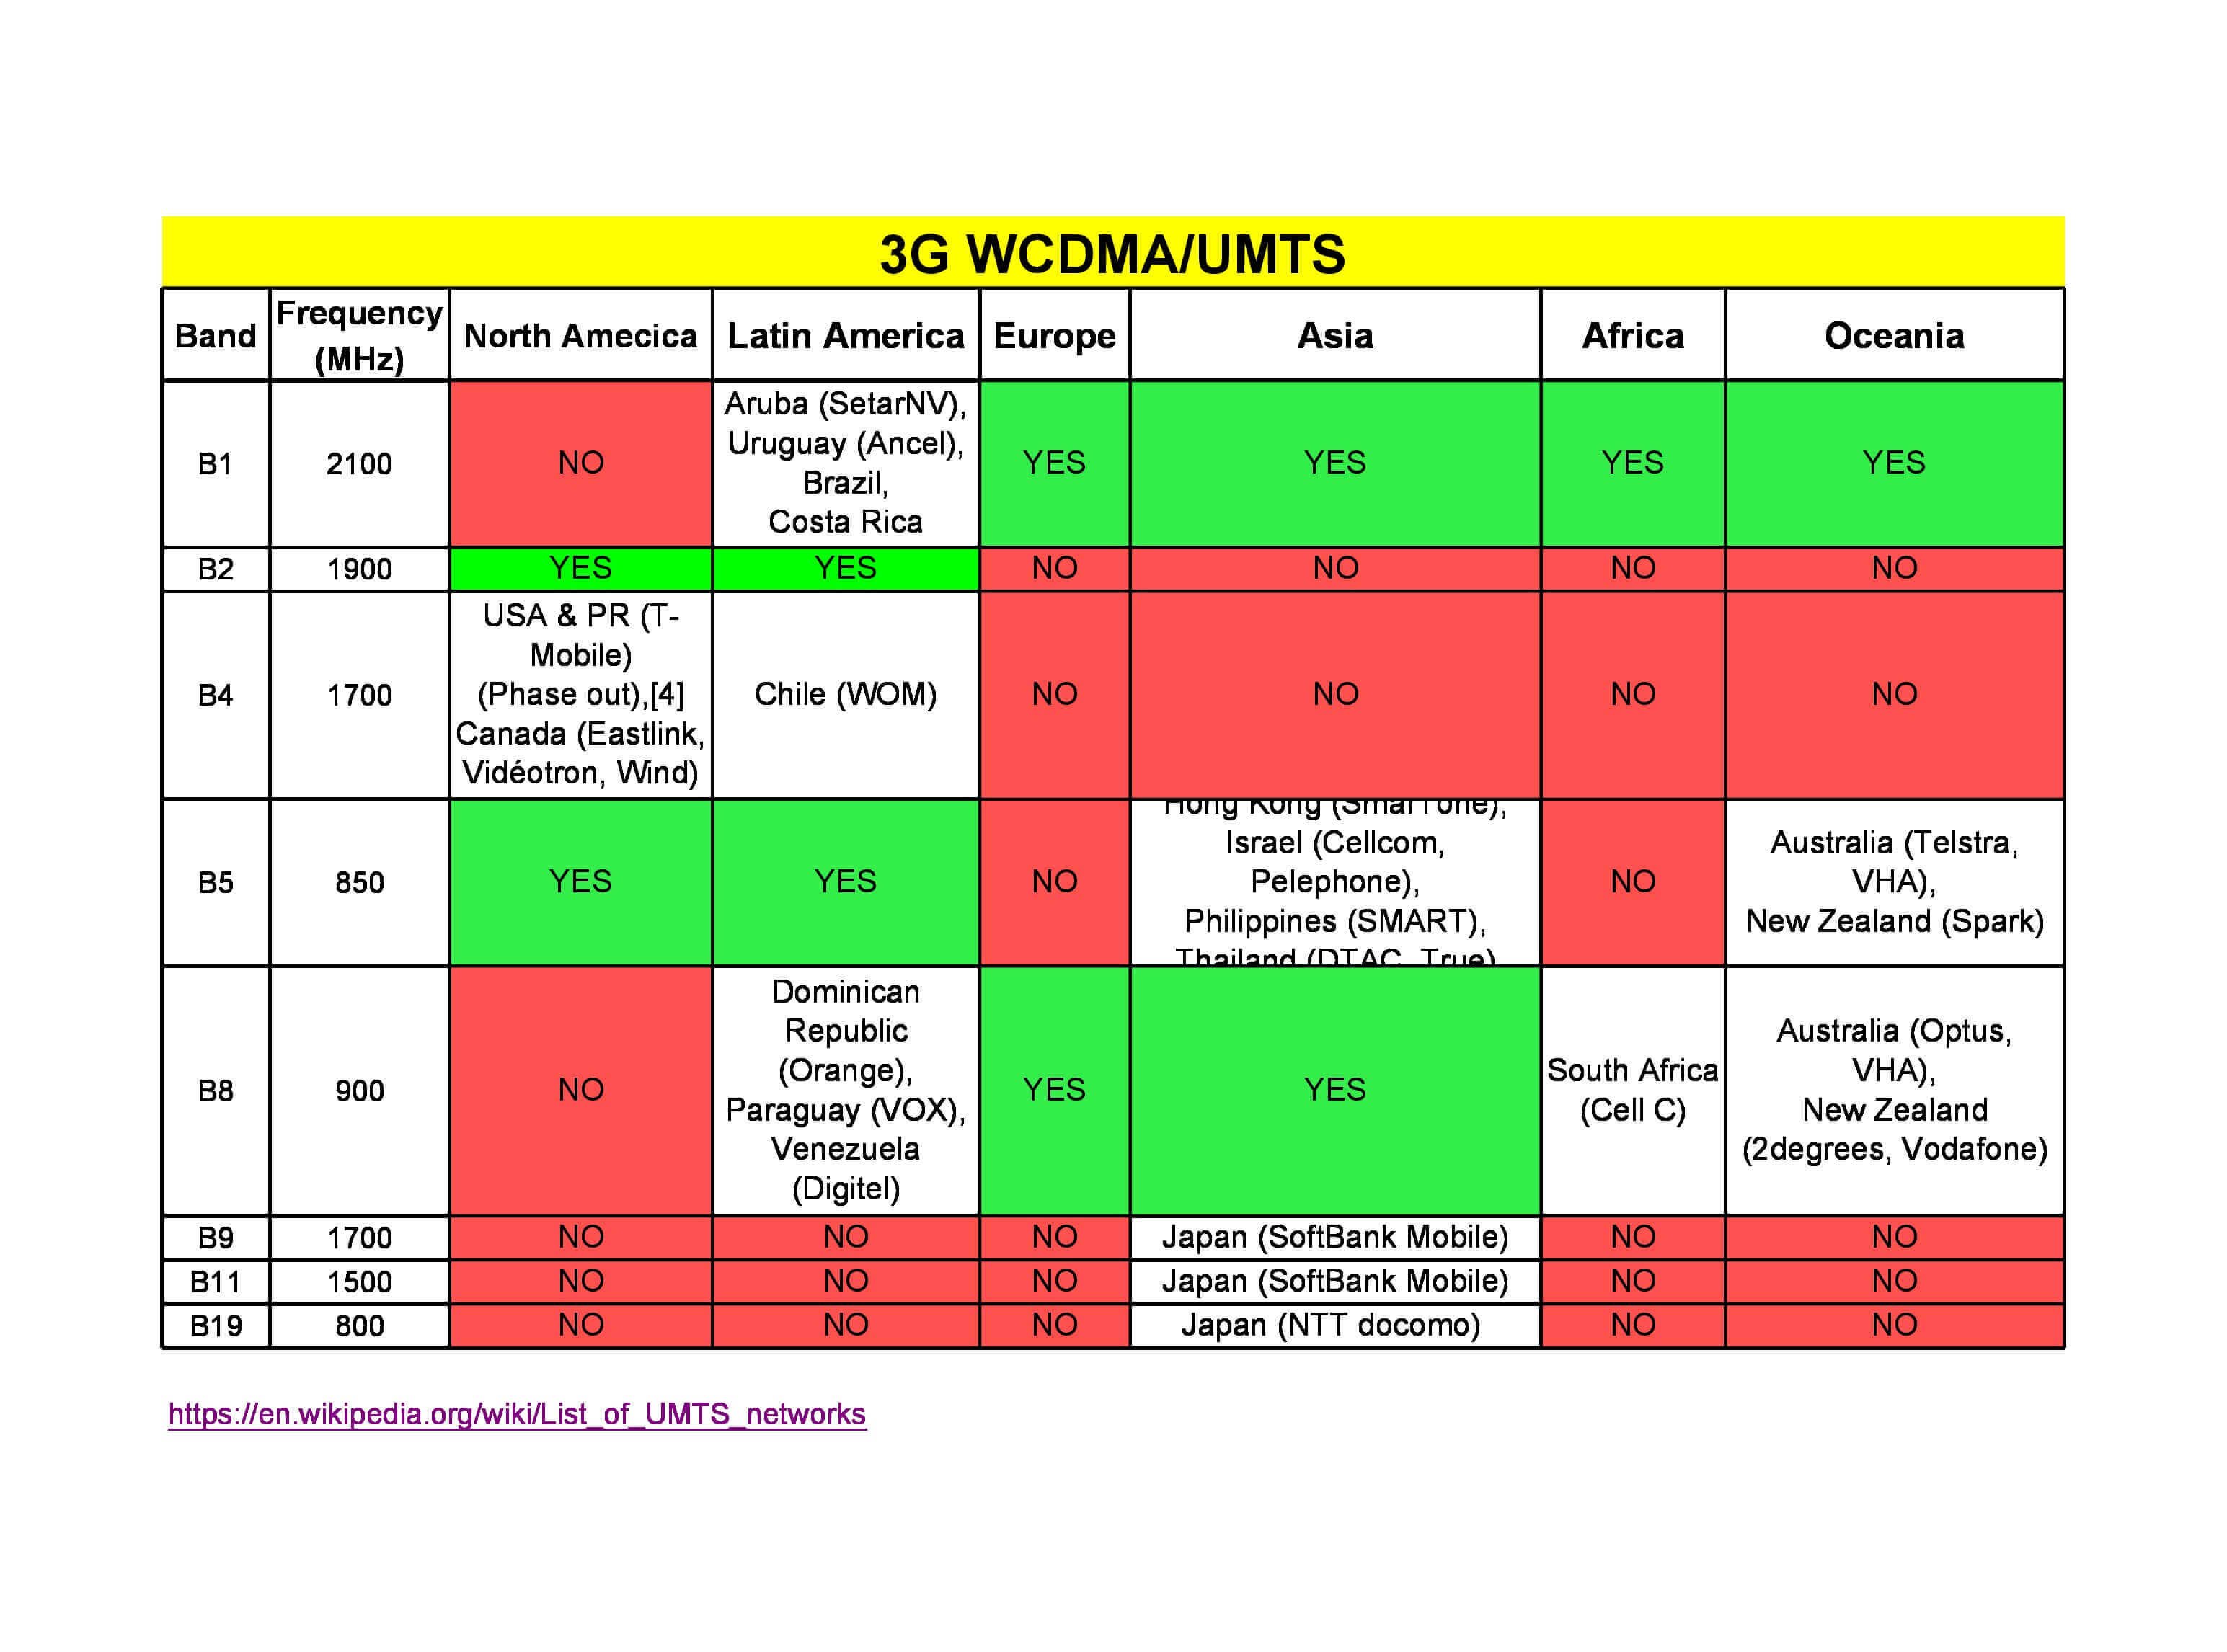 Global 4G/3G/2G Frequency bands List - Choose the Correct 4G Devices